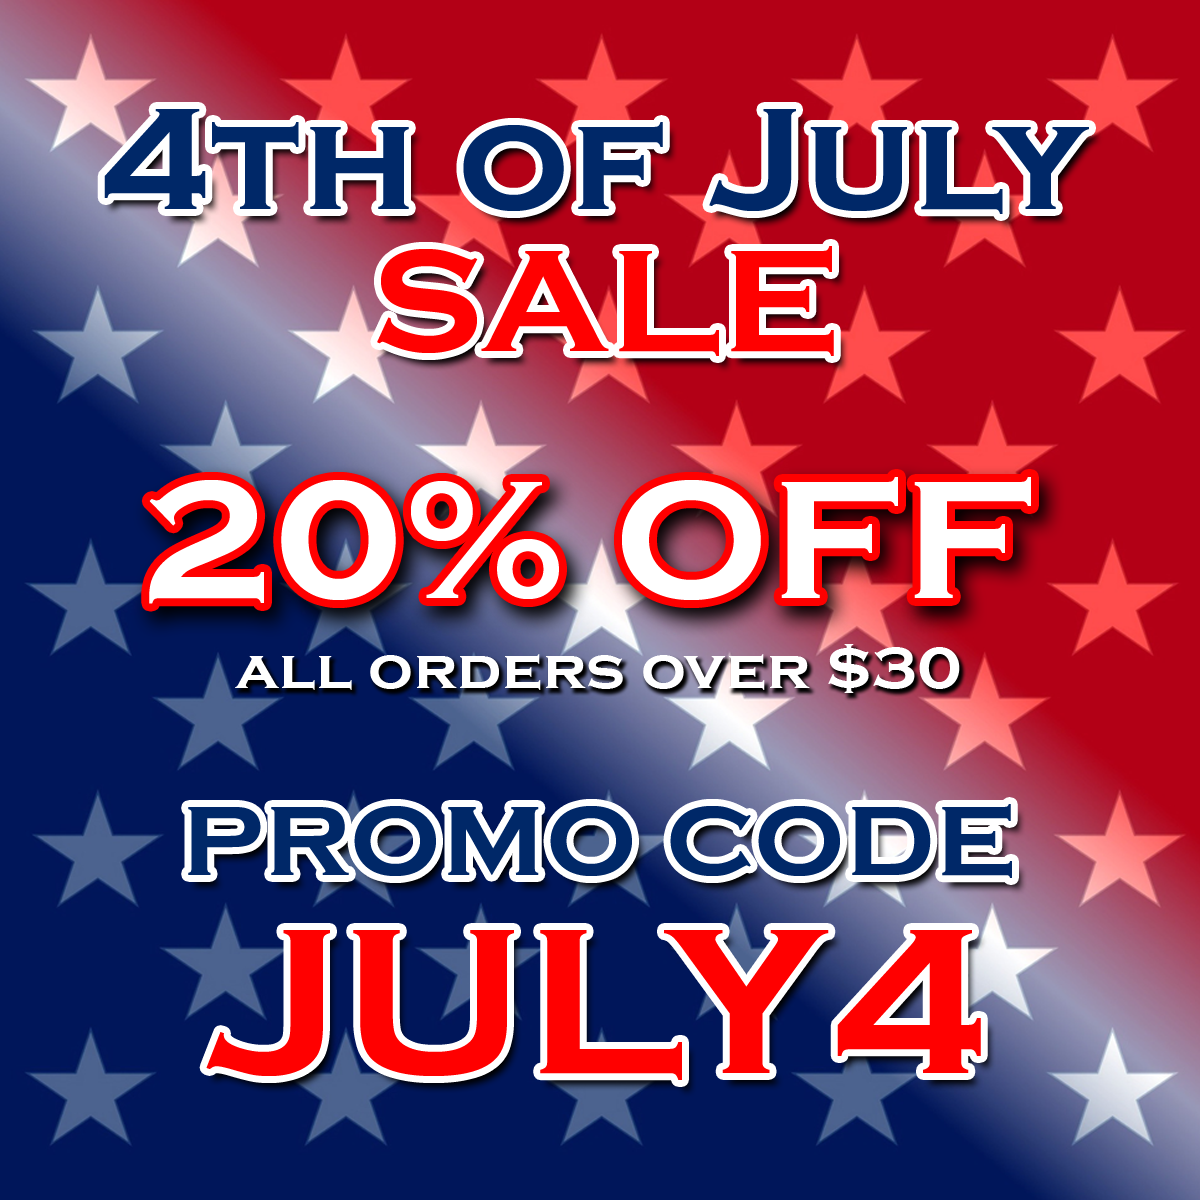 DJ Drops 24/7 - 4th of July Sale 2017